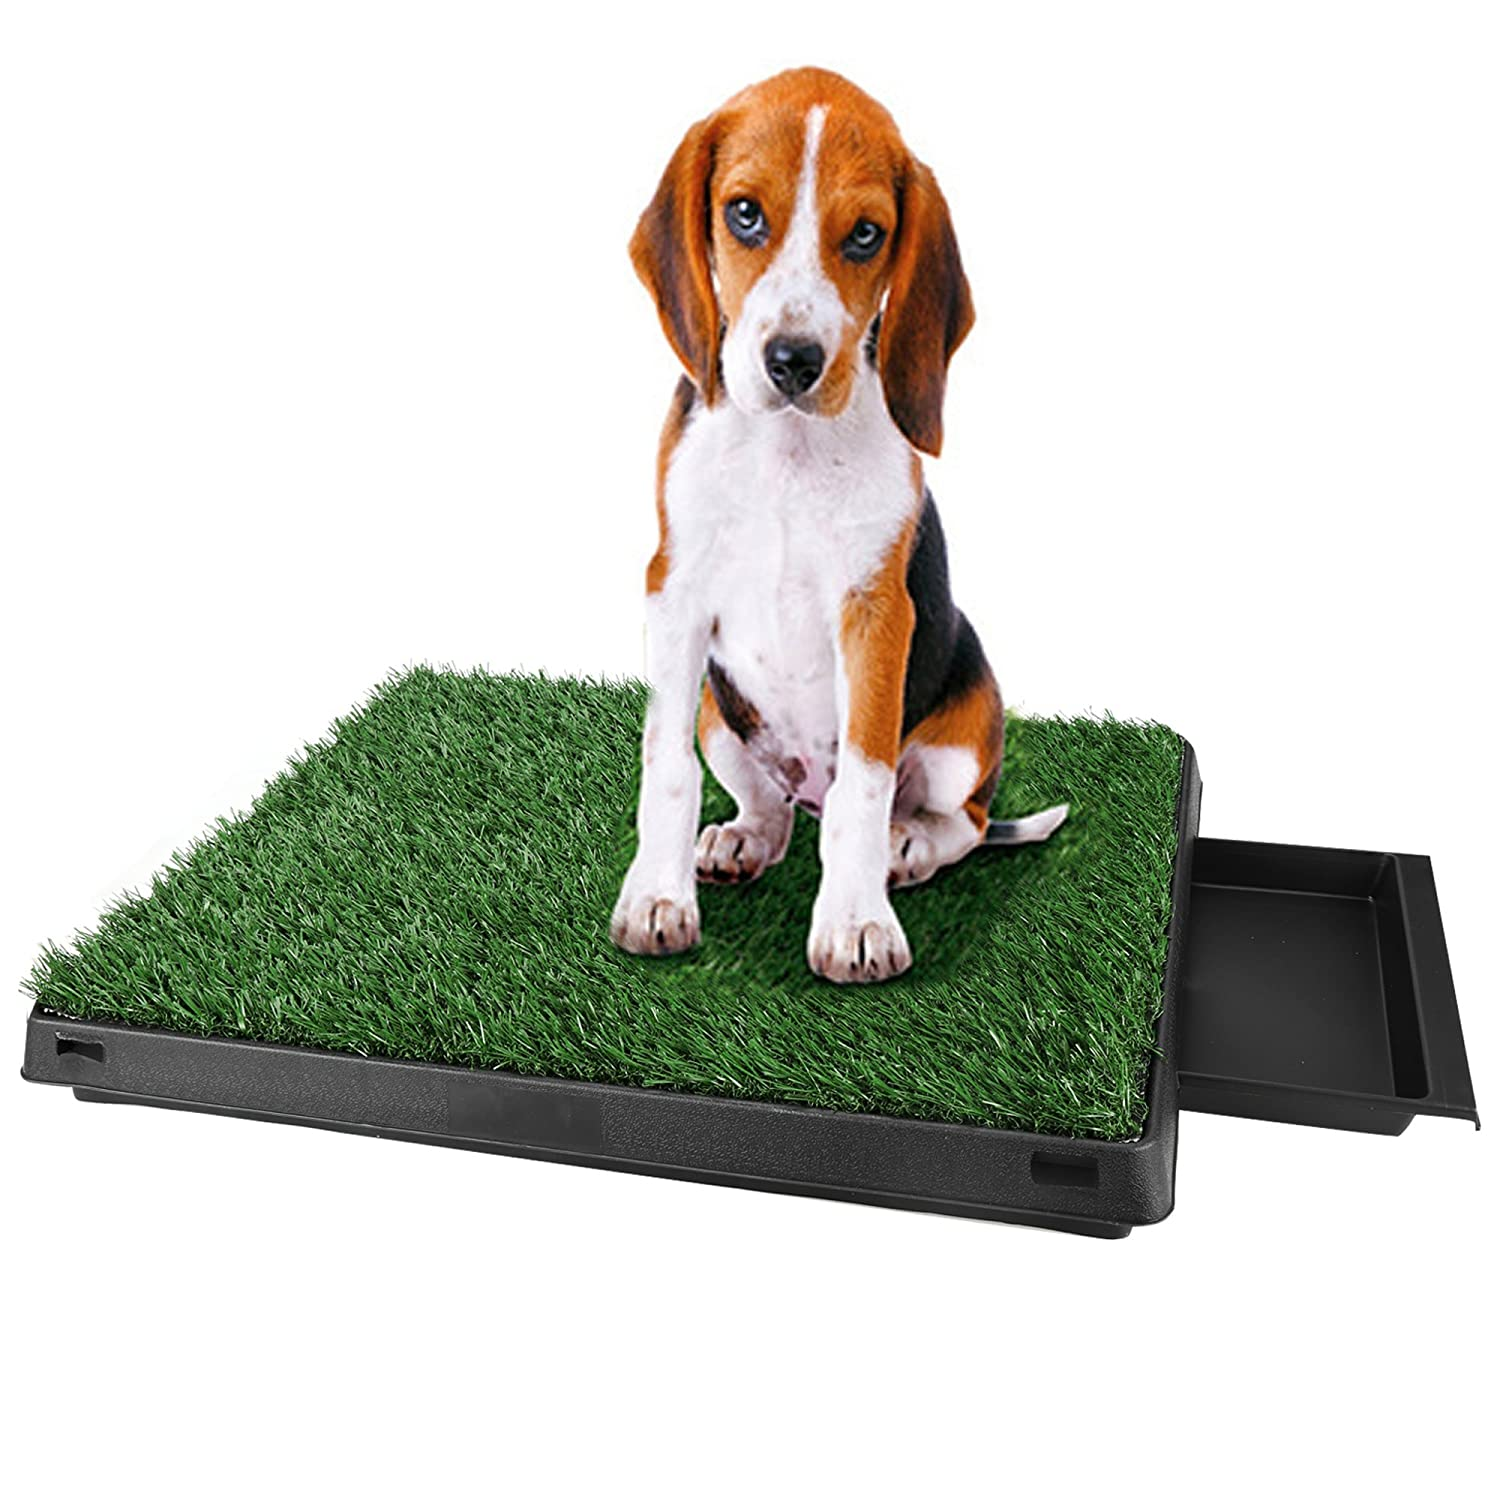 Amazon.com : Homdox Dog Grass Pee Potty Grass Patch Potty Puppy ...